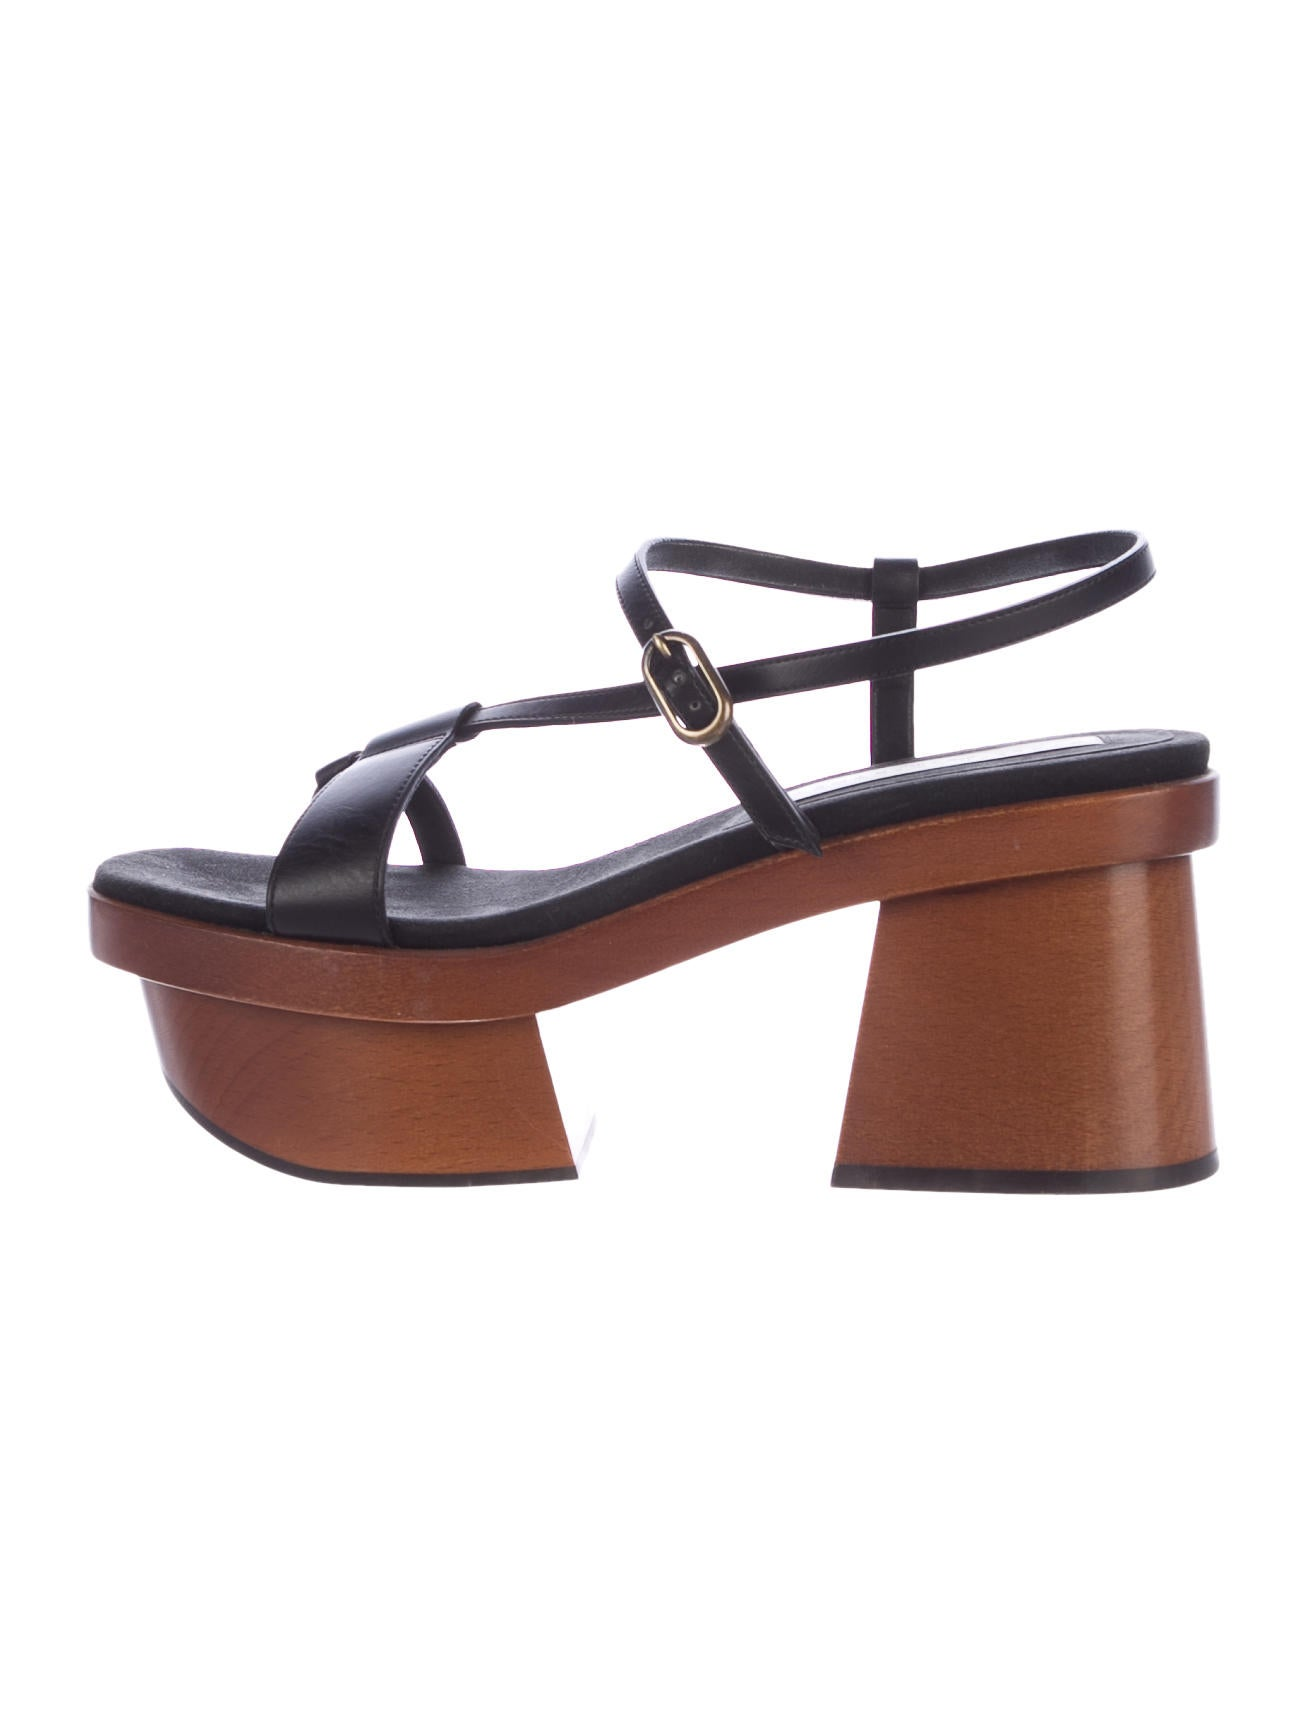 Platform Ankle Strap Sandals with FREE Shipping & Exchanges, and a % price guarantee. Choose from a huge selection of Platform Ankle Strap Sandals styles.